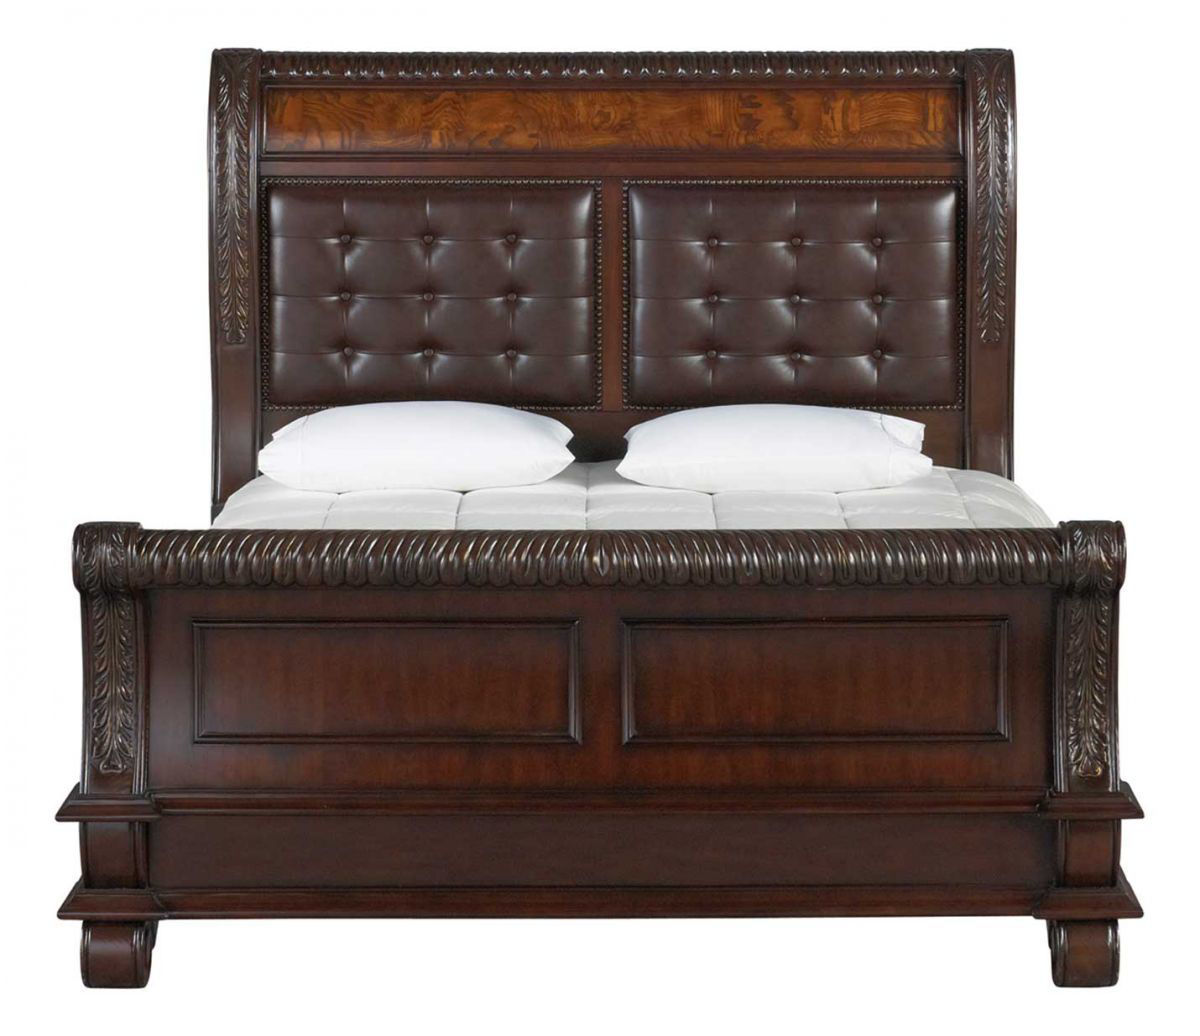 Picture of Sophia King Sleigh Bed